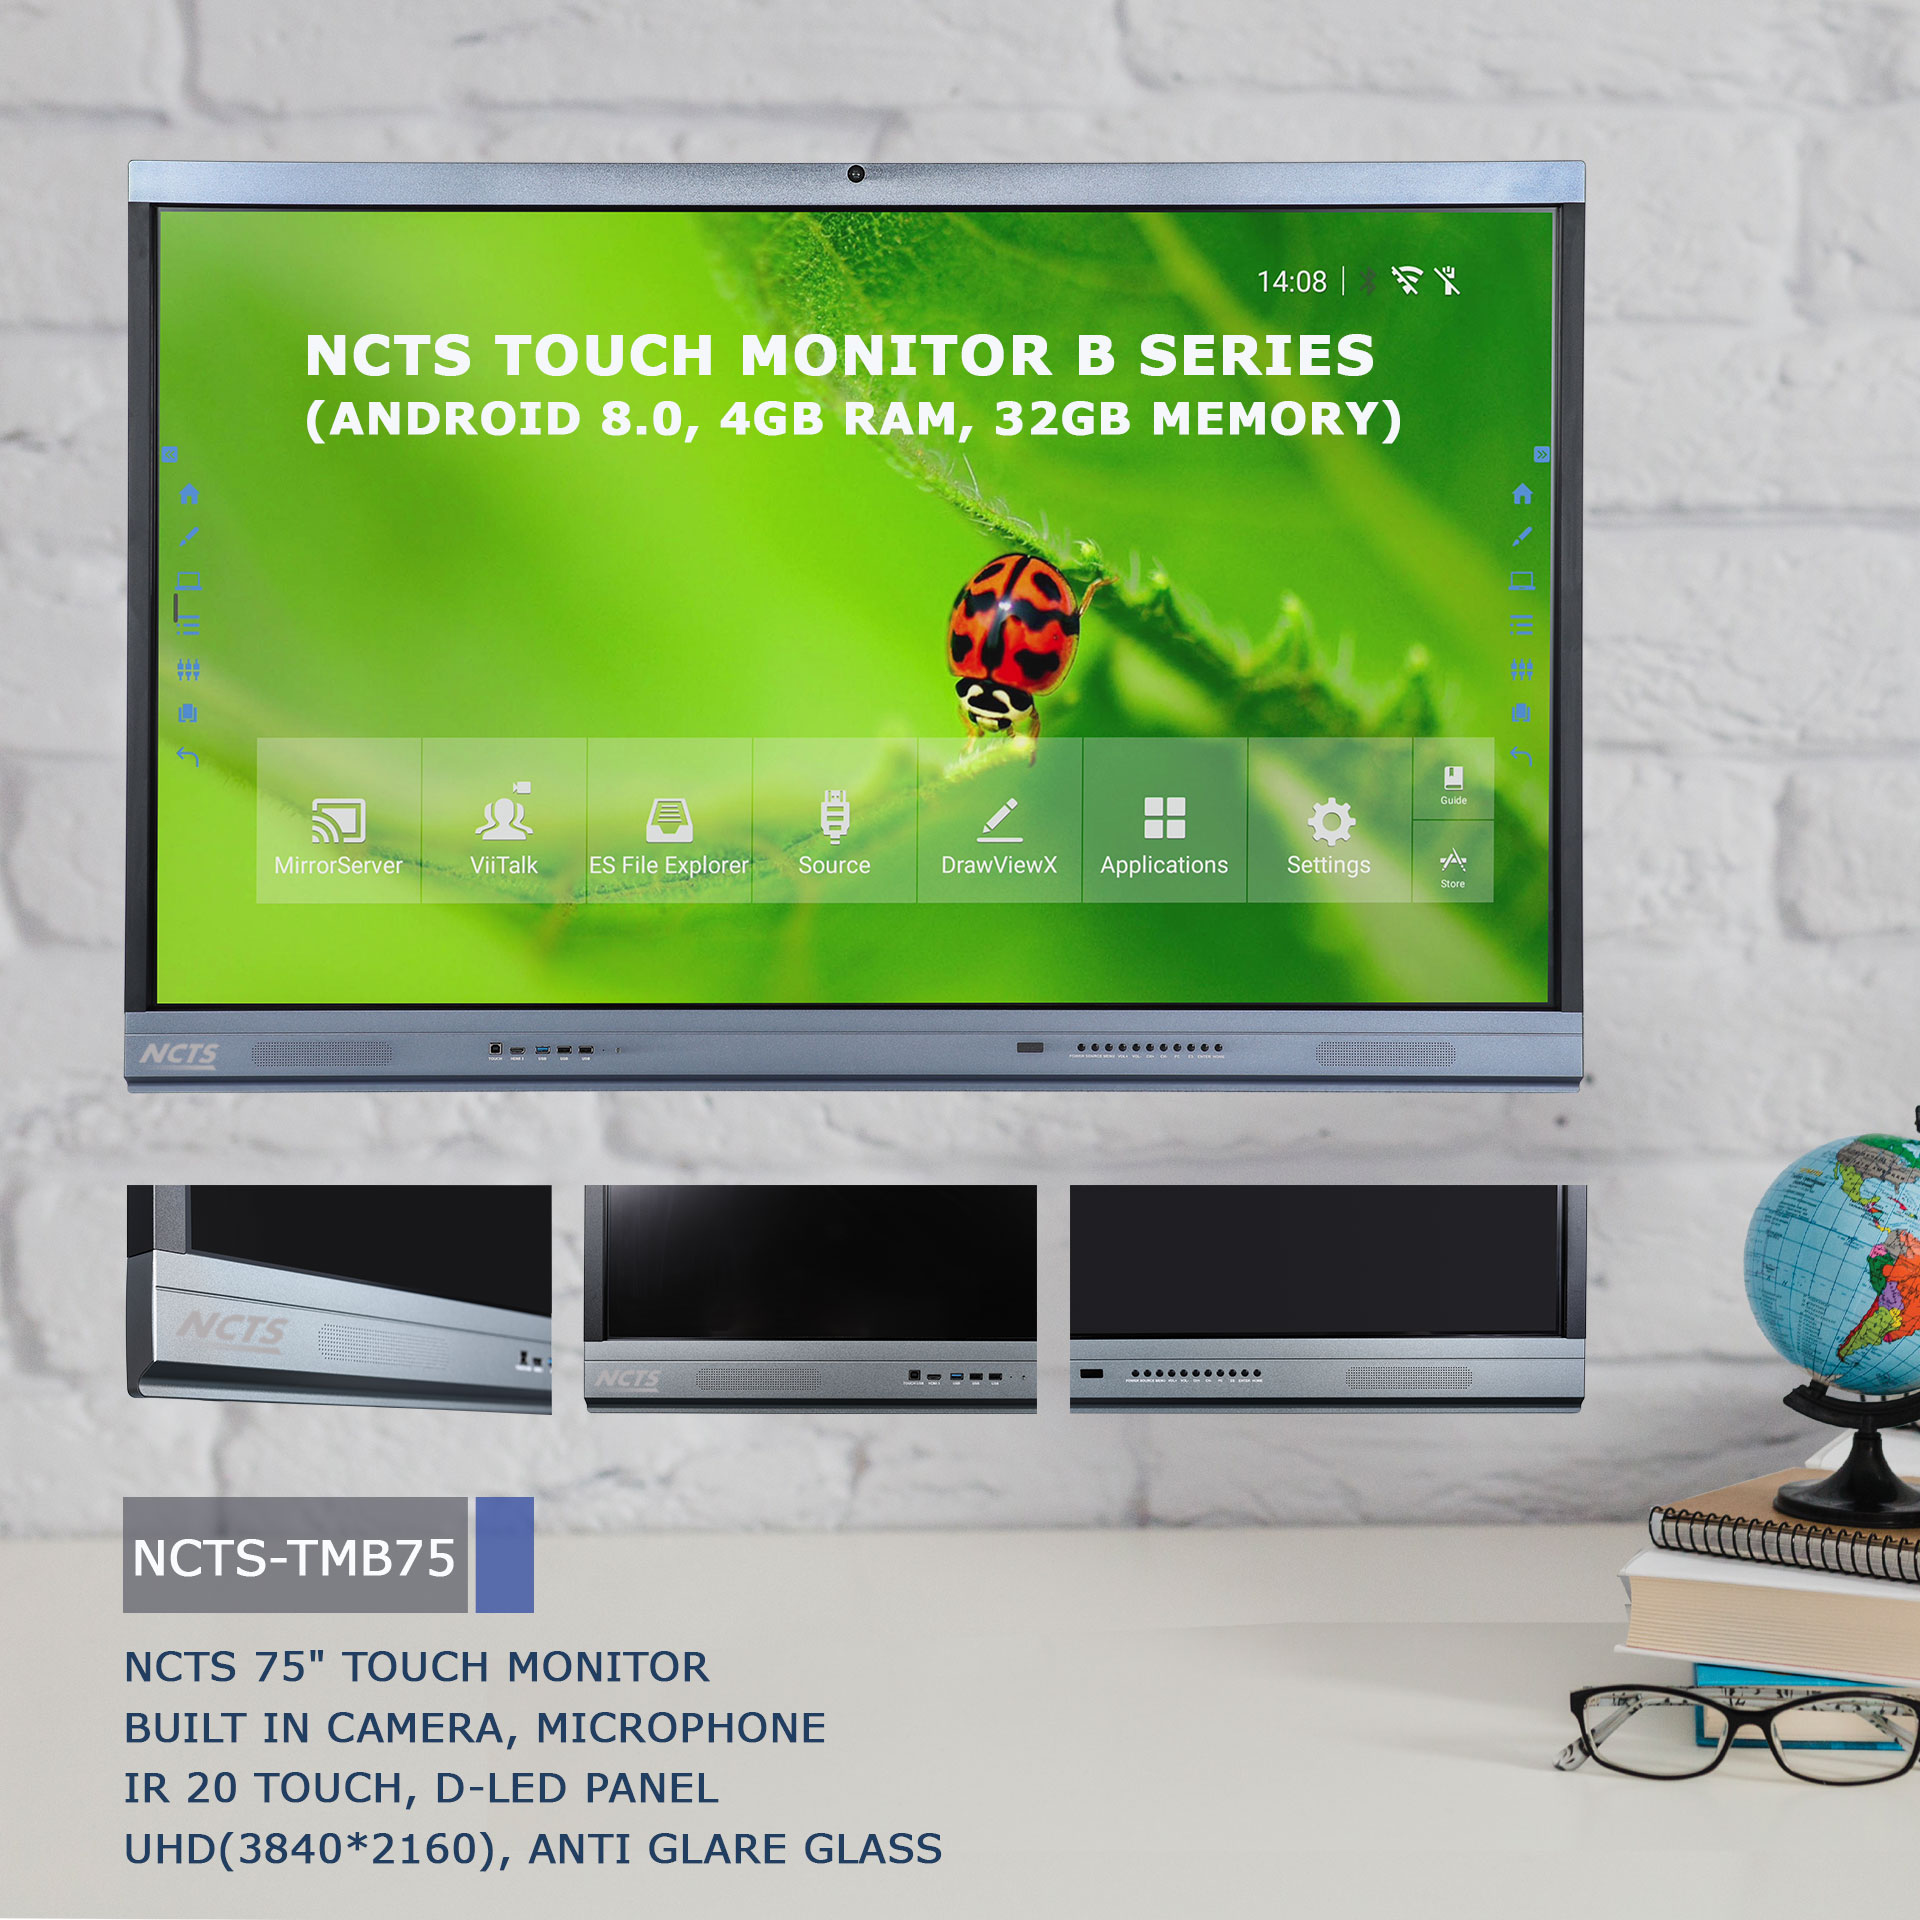 NCTS-TMB75